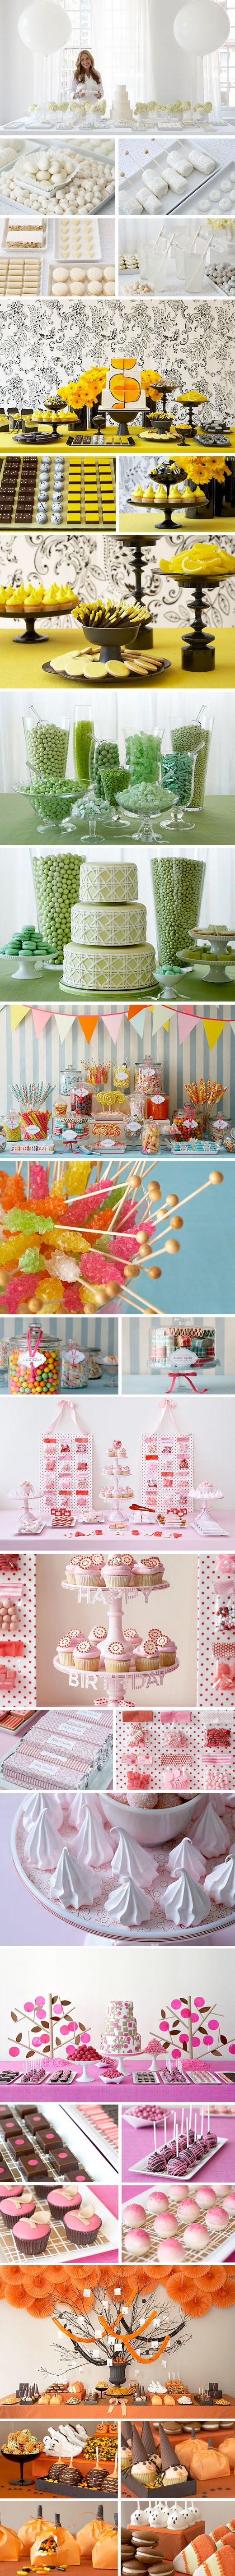 candy displays: Birthday, Colors Combos, Creative Ideas, Color Combos, Fun Ideas, Fun Creative, Shower, Parties Ideas, Parties Theme